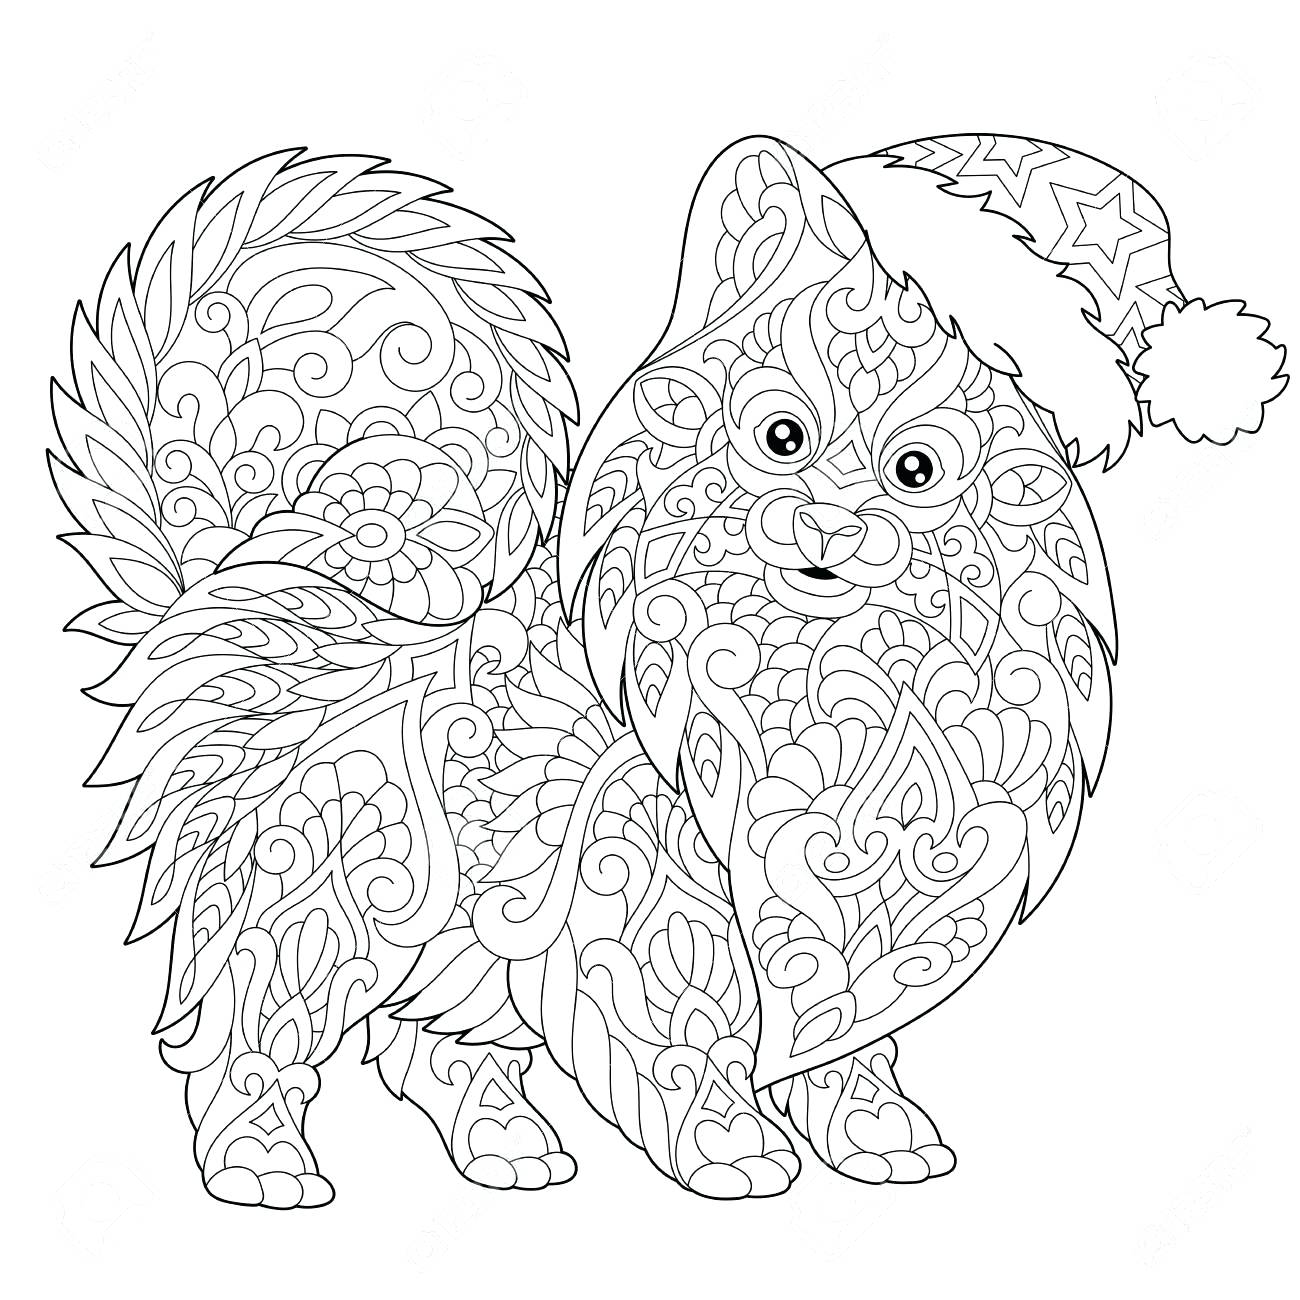 1300x1300 Coloring Coloring Chinese New Year Page Of Dog Symbol Freehand